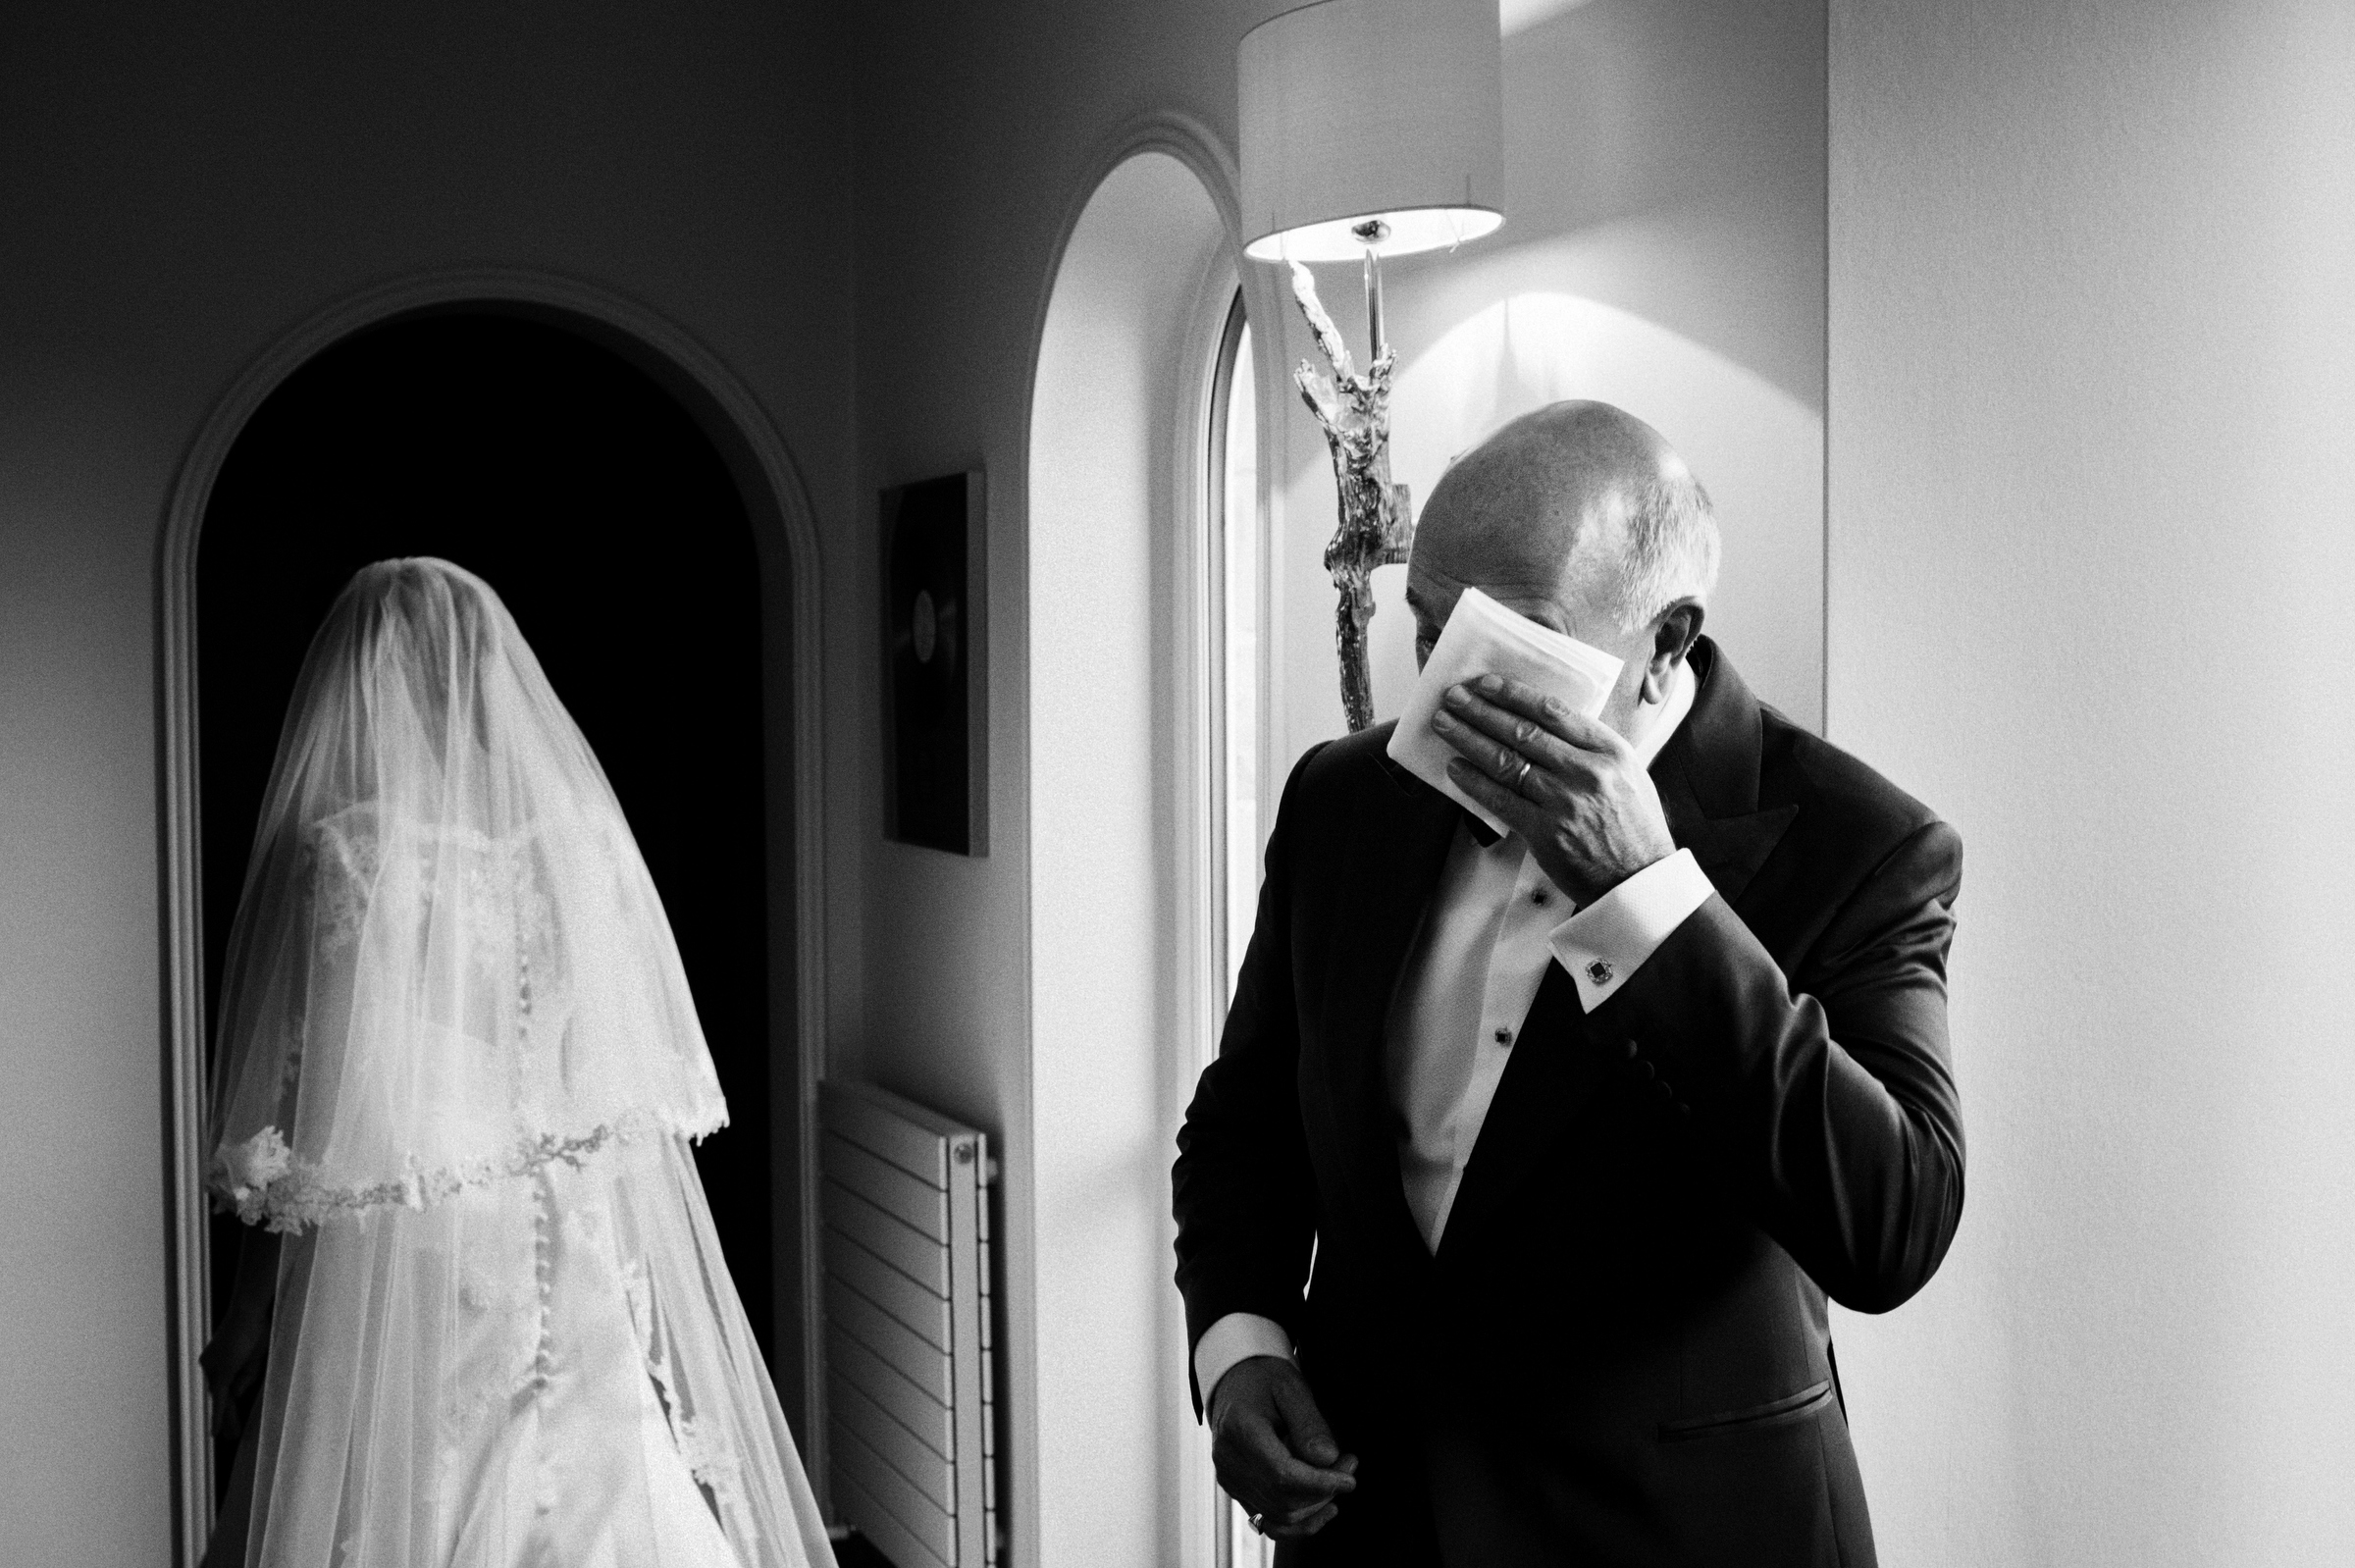 Father wipes his tears away as bride leaves for wedding ceremony - photo by Jeff Ascough,